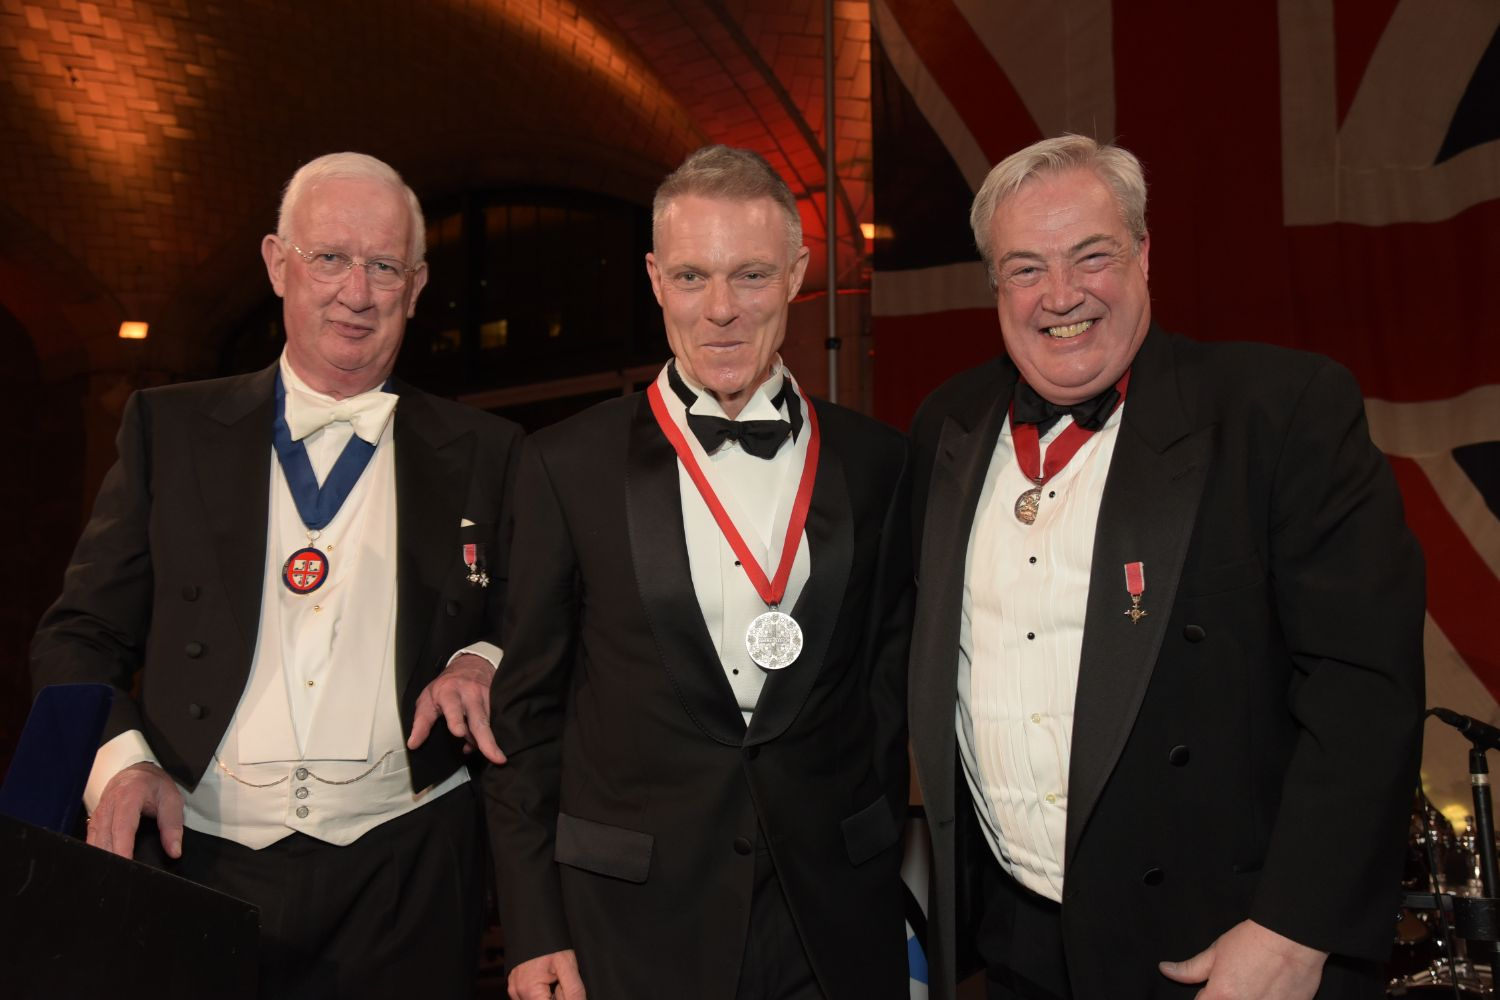 C. Hugh Hildesley MBE, Tim Marlow and Philip Warner OBE